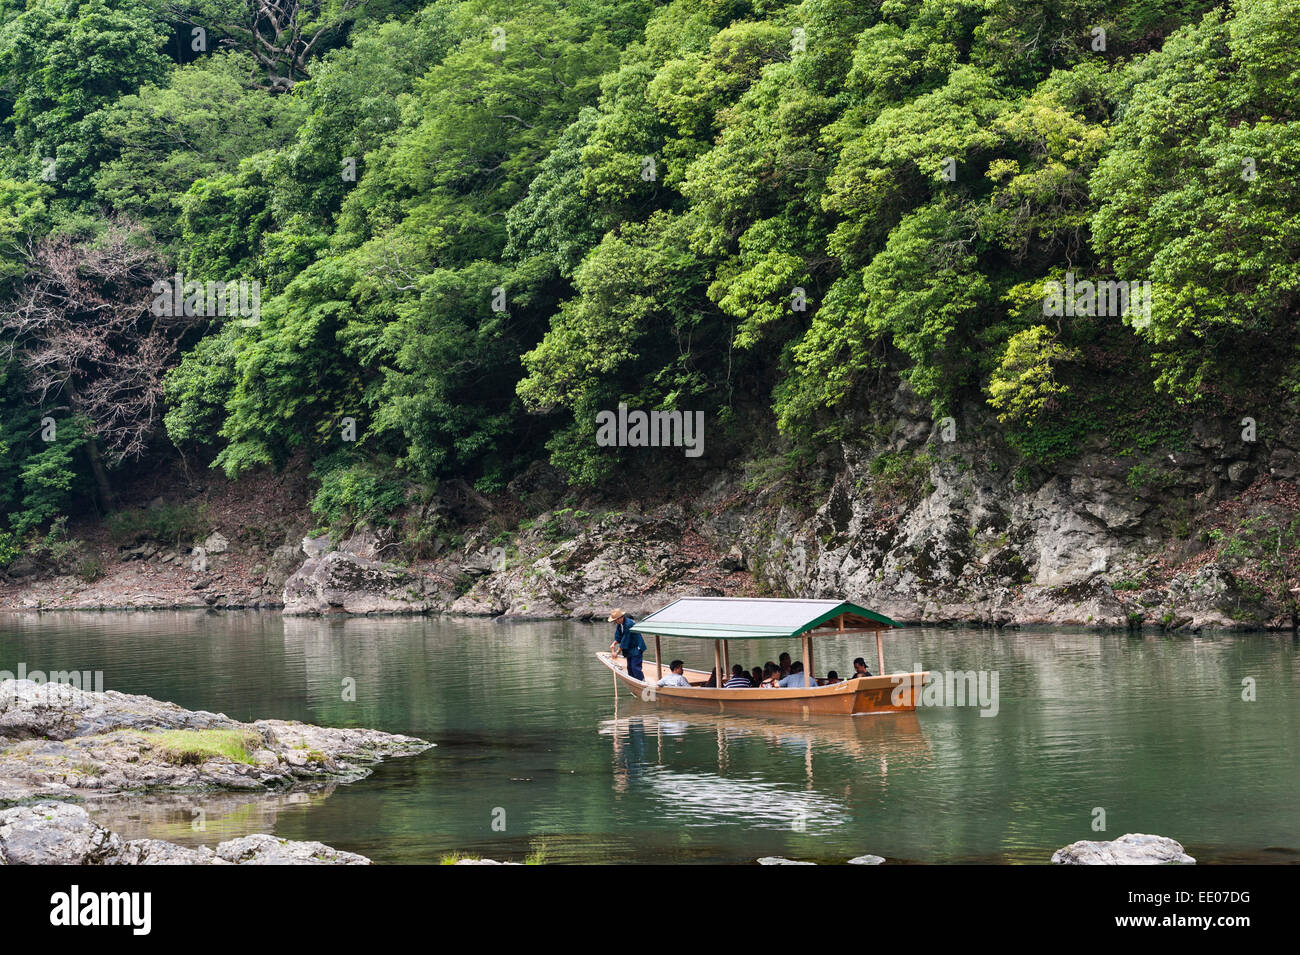 Arashiyama, Kyoto, Japan. Tourists taking a boat trip along the Katsura River - Stock Image